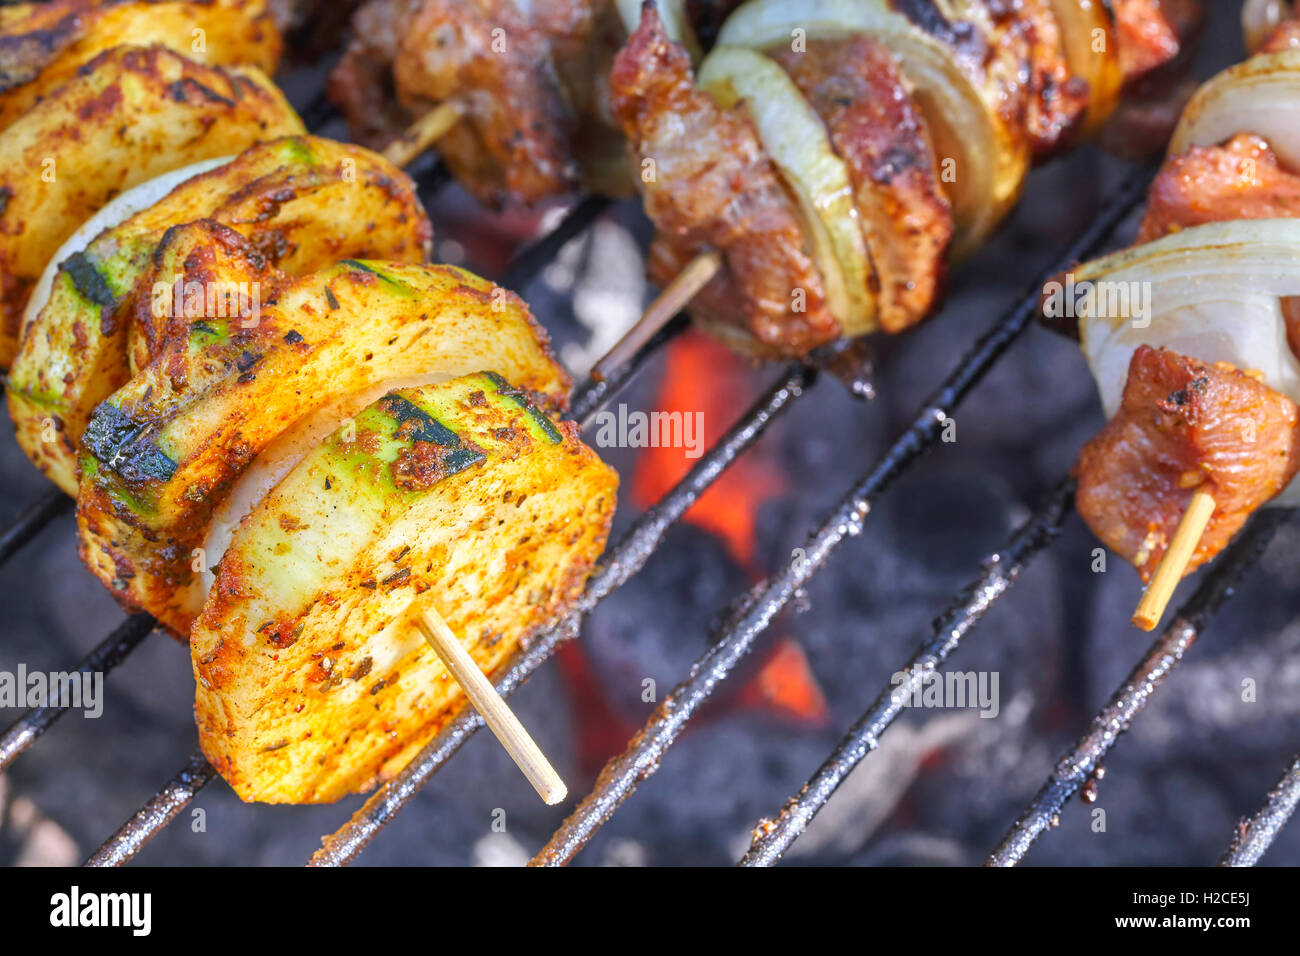 Close up picture of a zucchini and meat skewers, garden barbecue, selective focus. - Stock Image